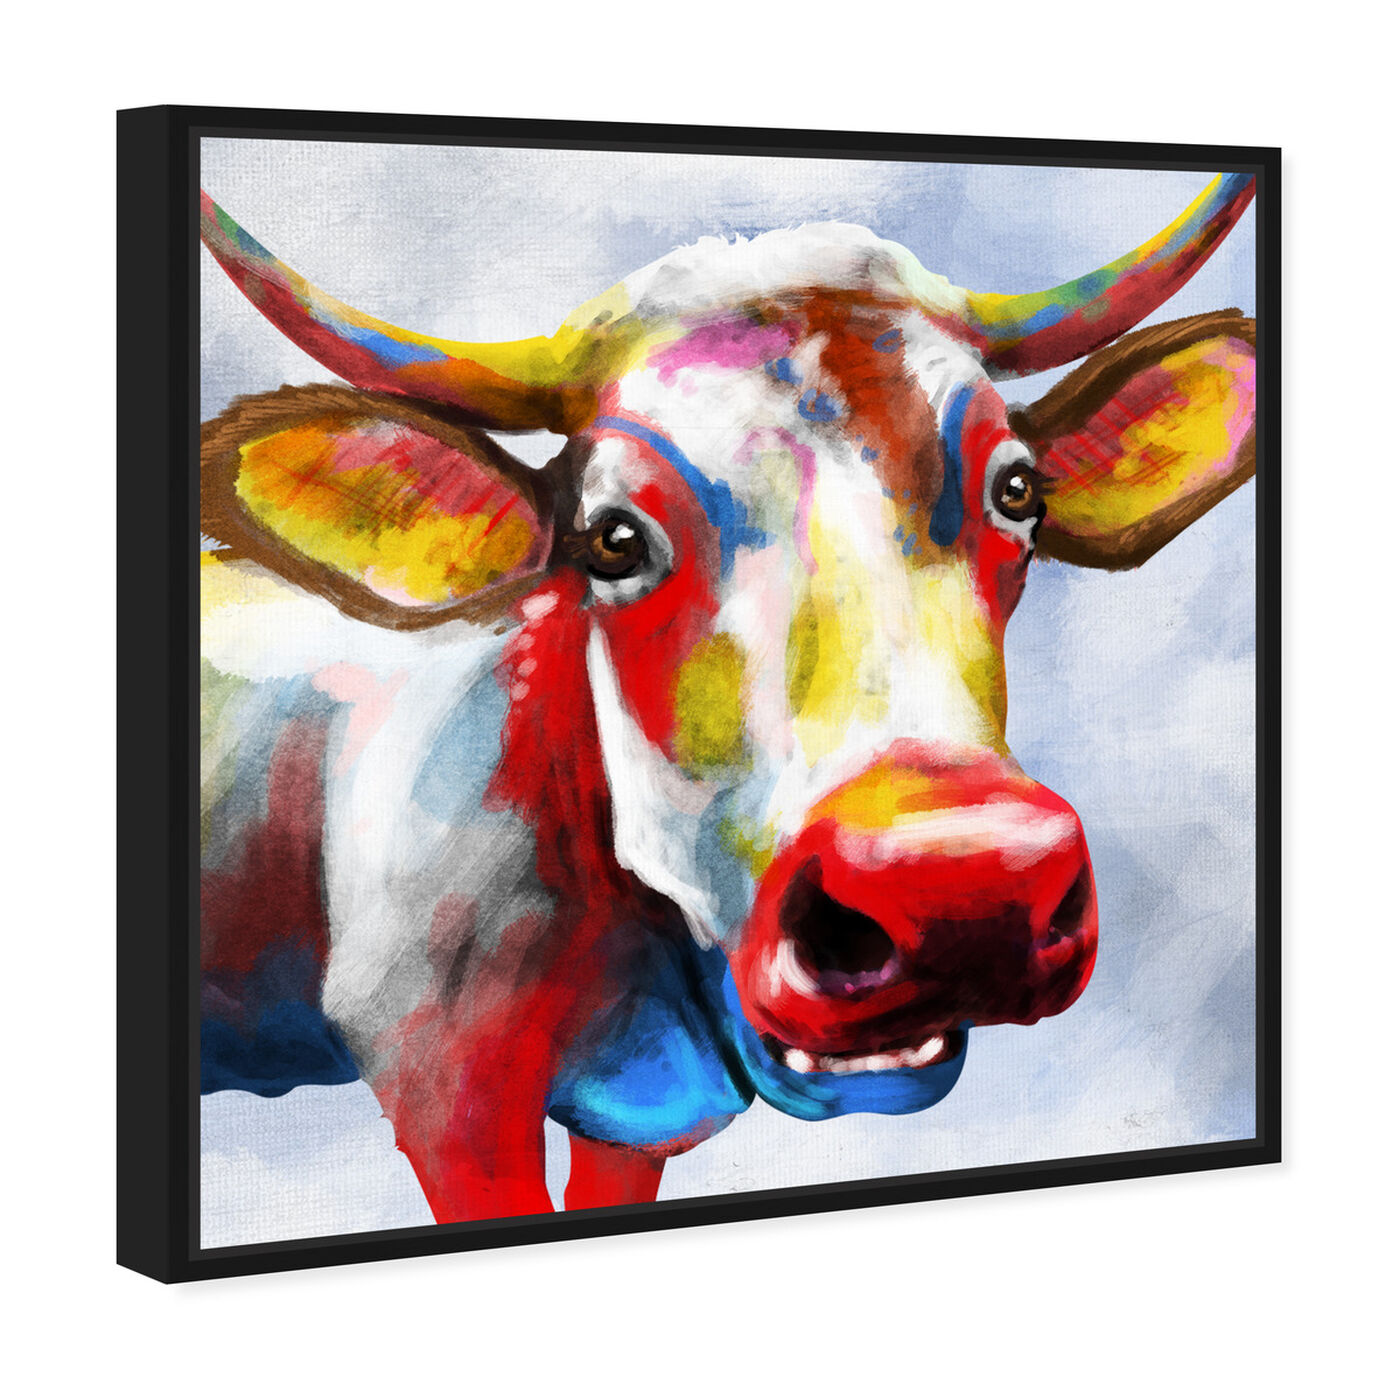 Angled view of Color Spash Bovine featuring animals and farm animals art.